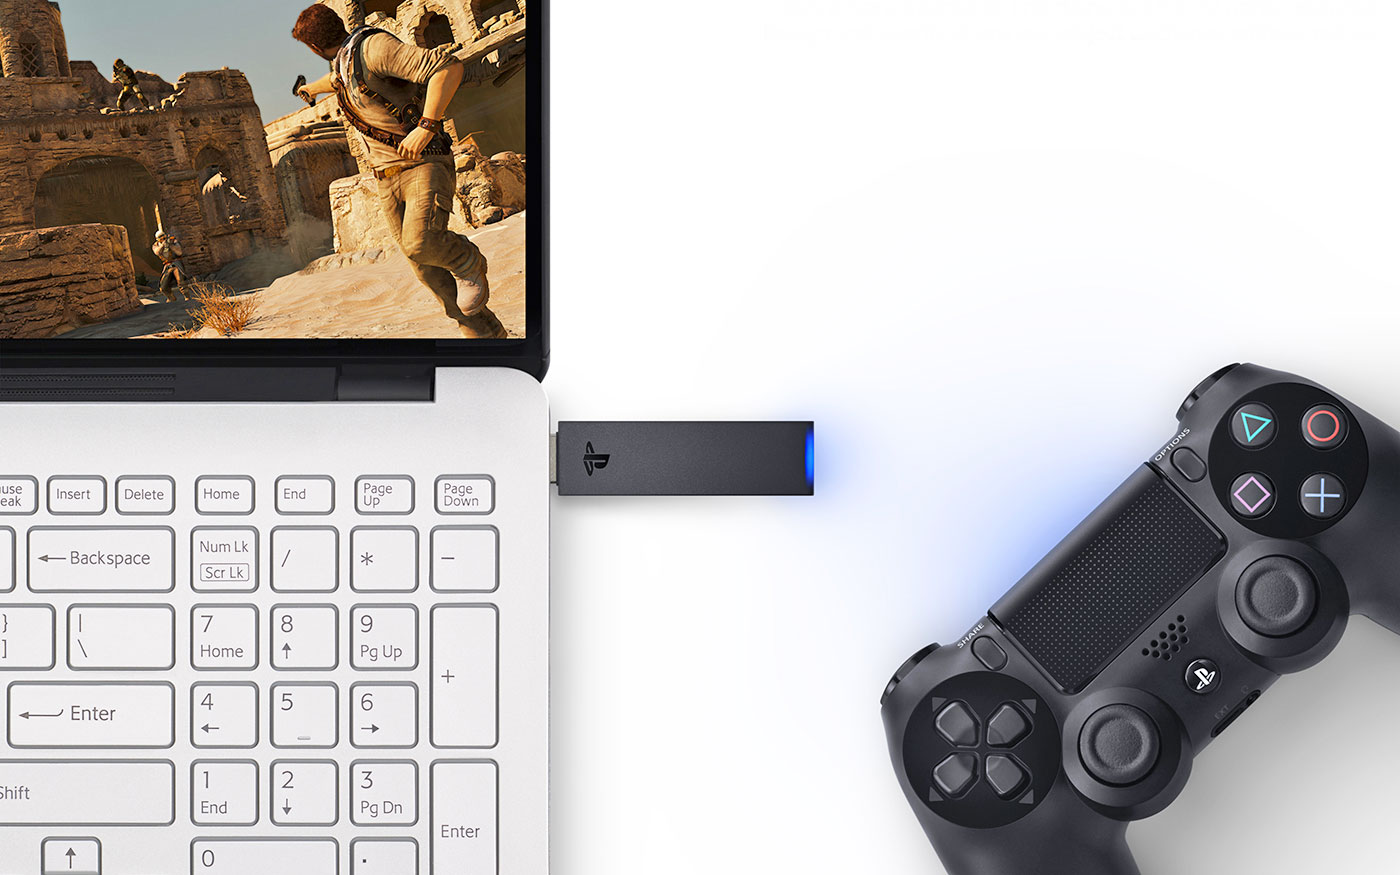 playstation weaknesses Playstation 5 rumors have been circulating for over a year now but there's still plenty we don't know here's everything you need to know about the ps5, including rumors about its release, specs.